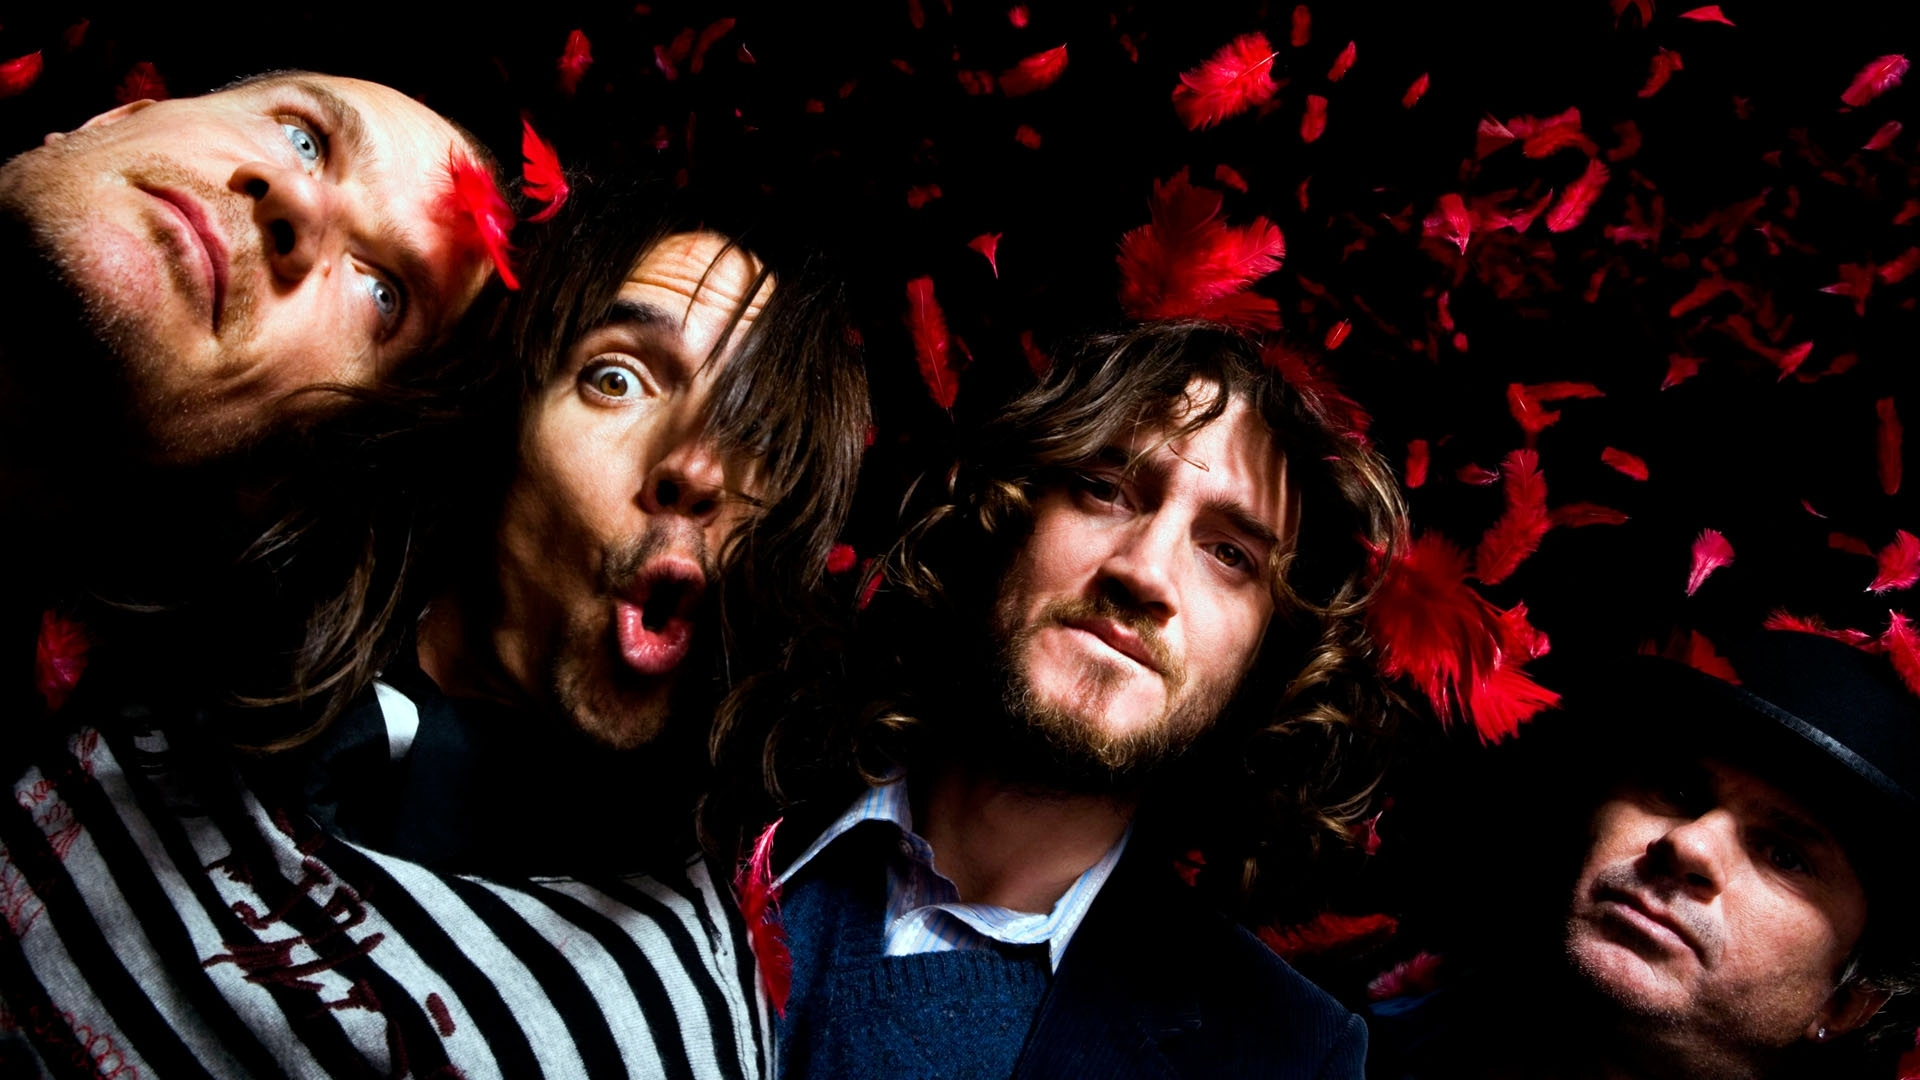 Red Hot Chili Peppers Wallpaper 42707 43718 Hd Wallpapers